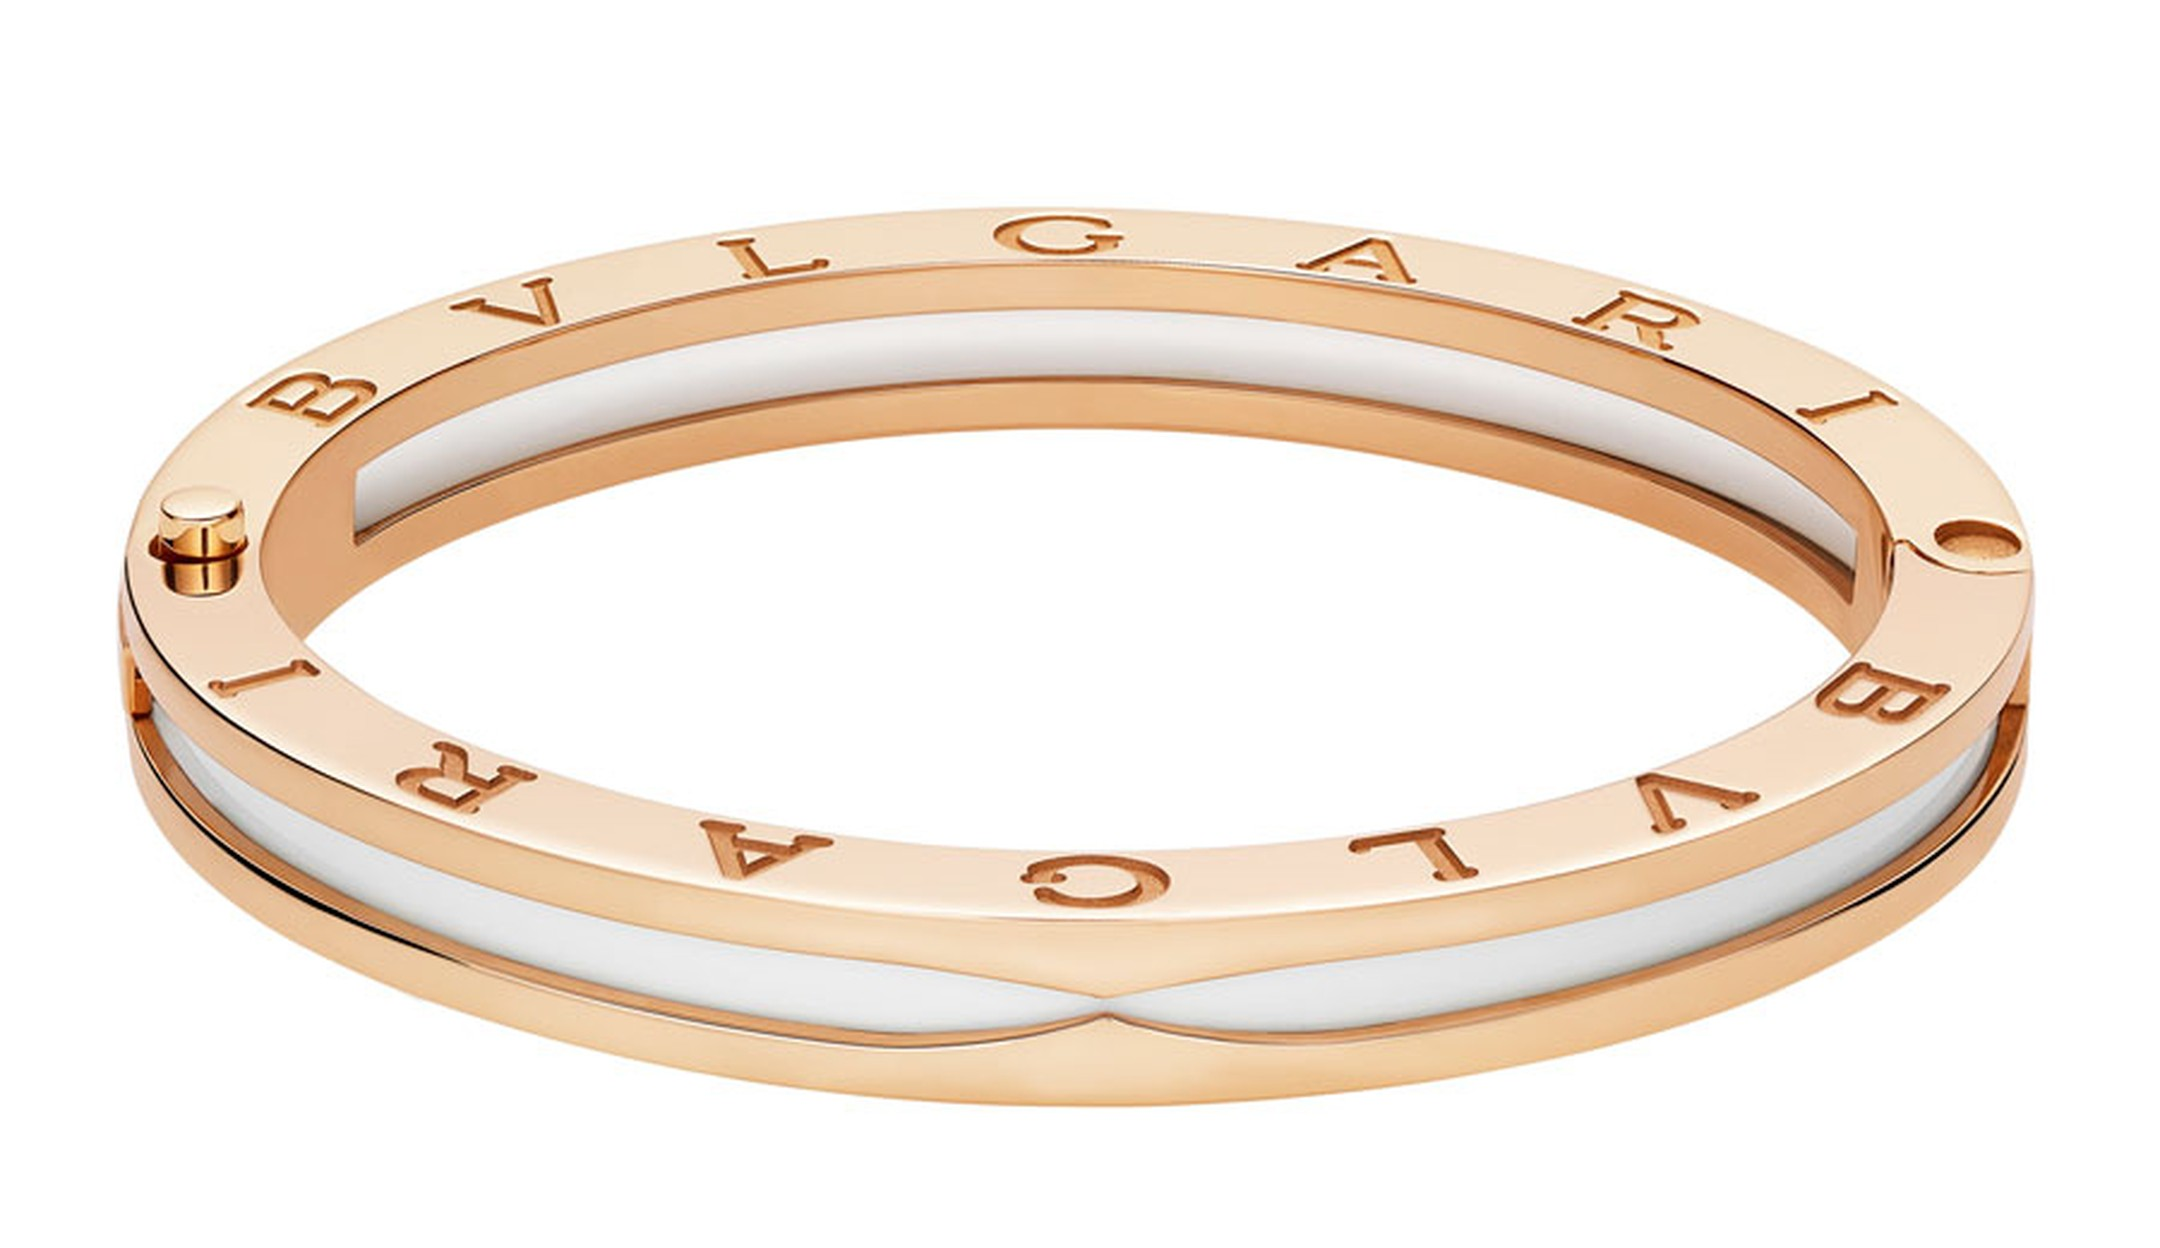 Bulgari B.zero1 pink gold and white ceramic bangle bracelet _ 4.150 GBP